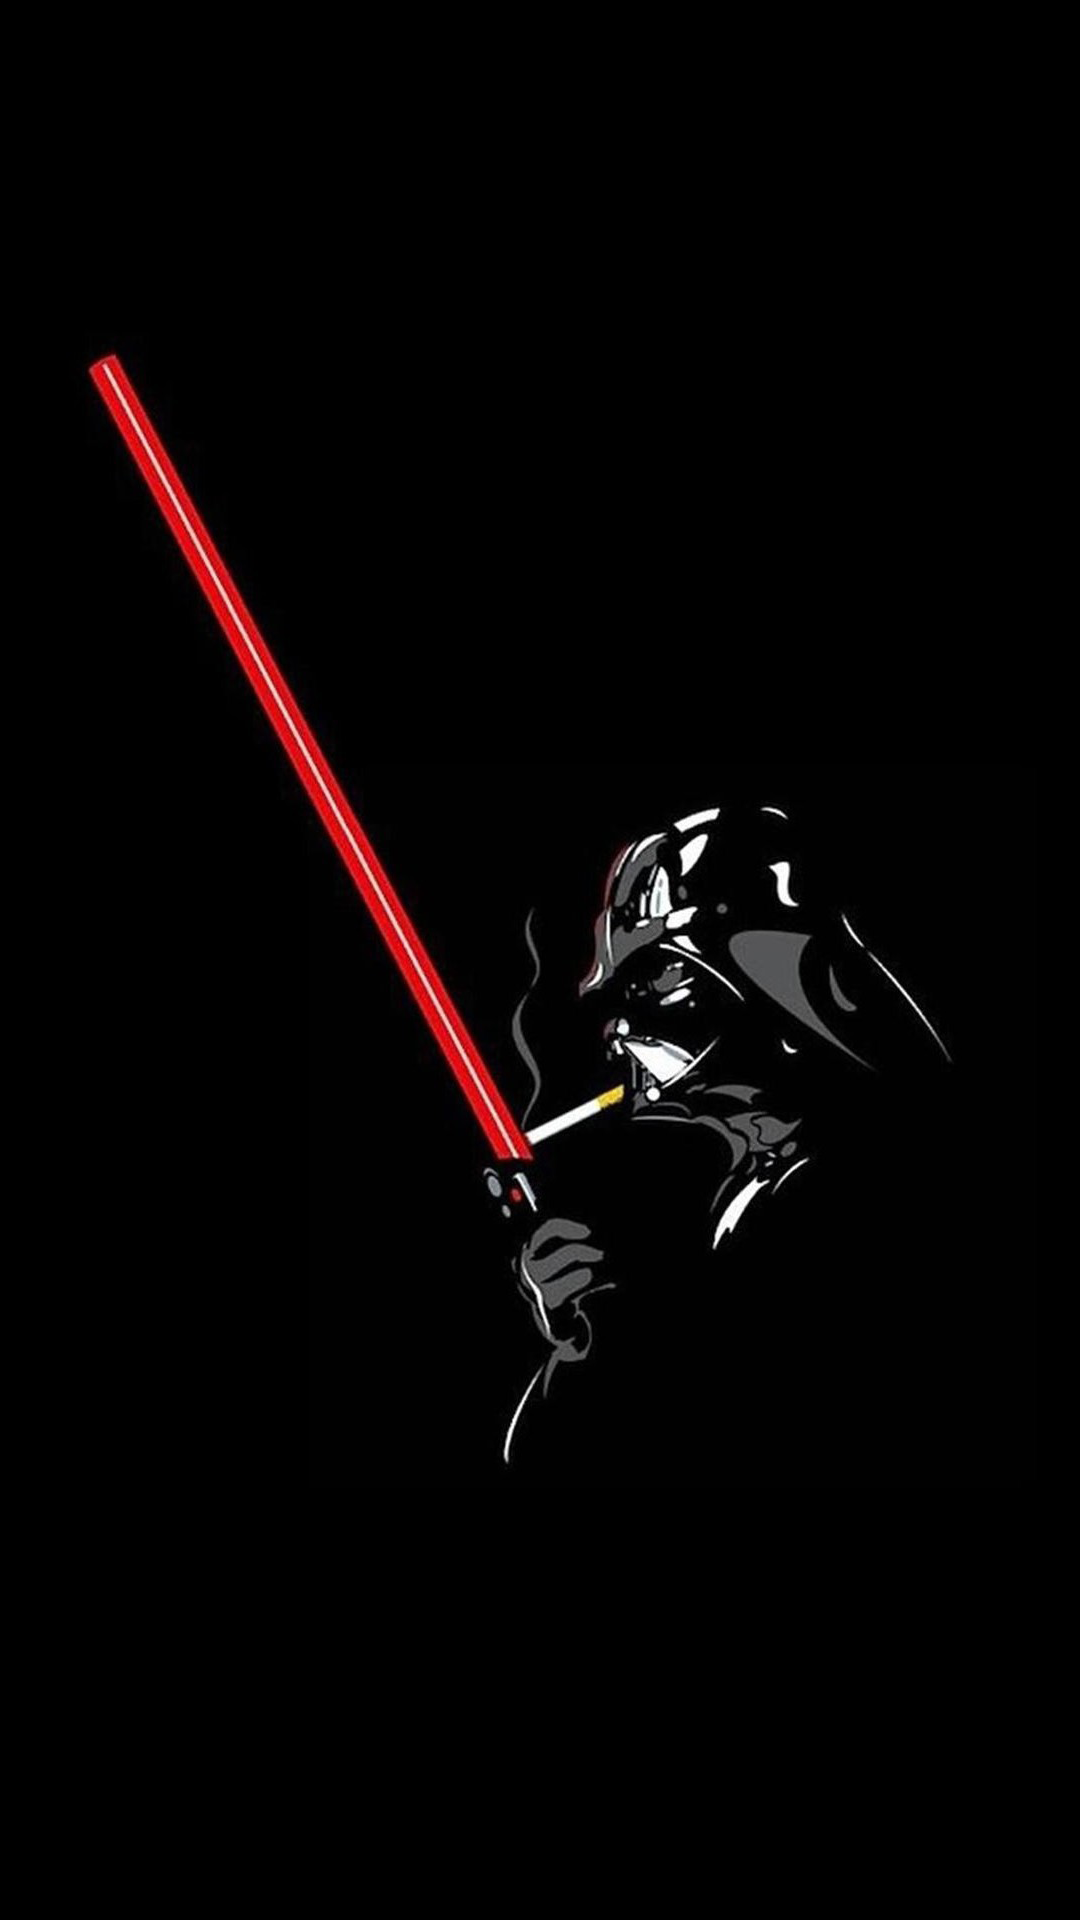 Ultra Hd Darth Vader Smoking Wallpaper For Your Mobile Phone 0085